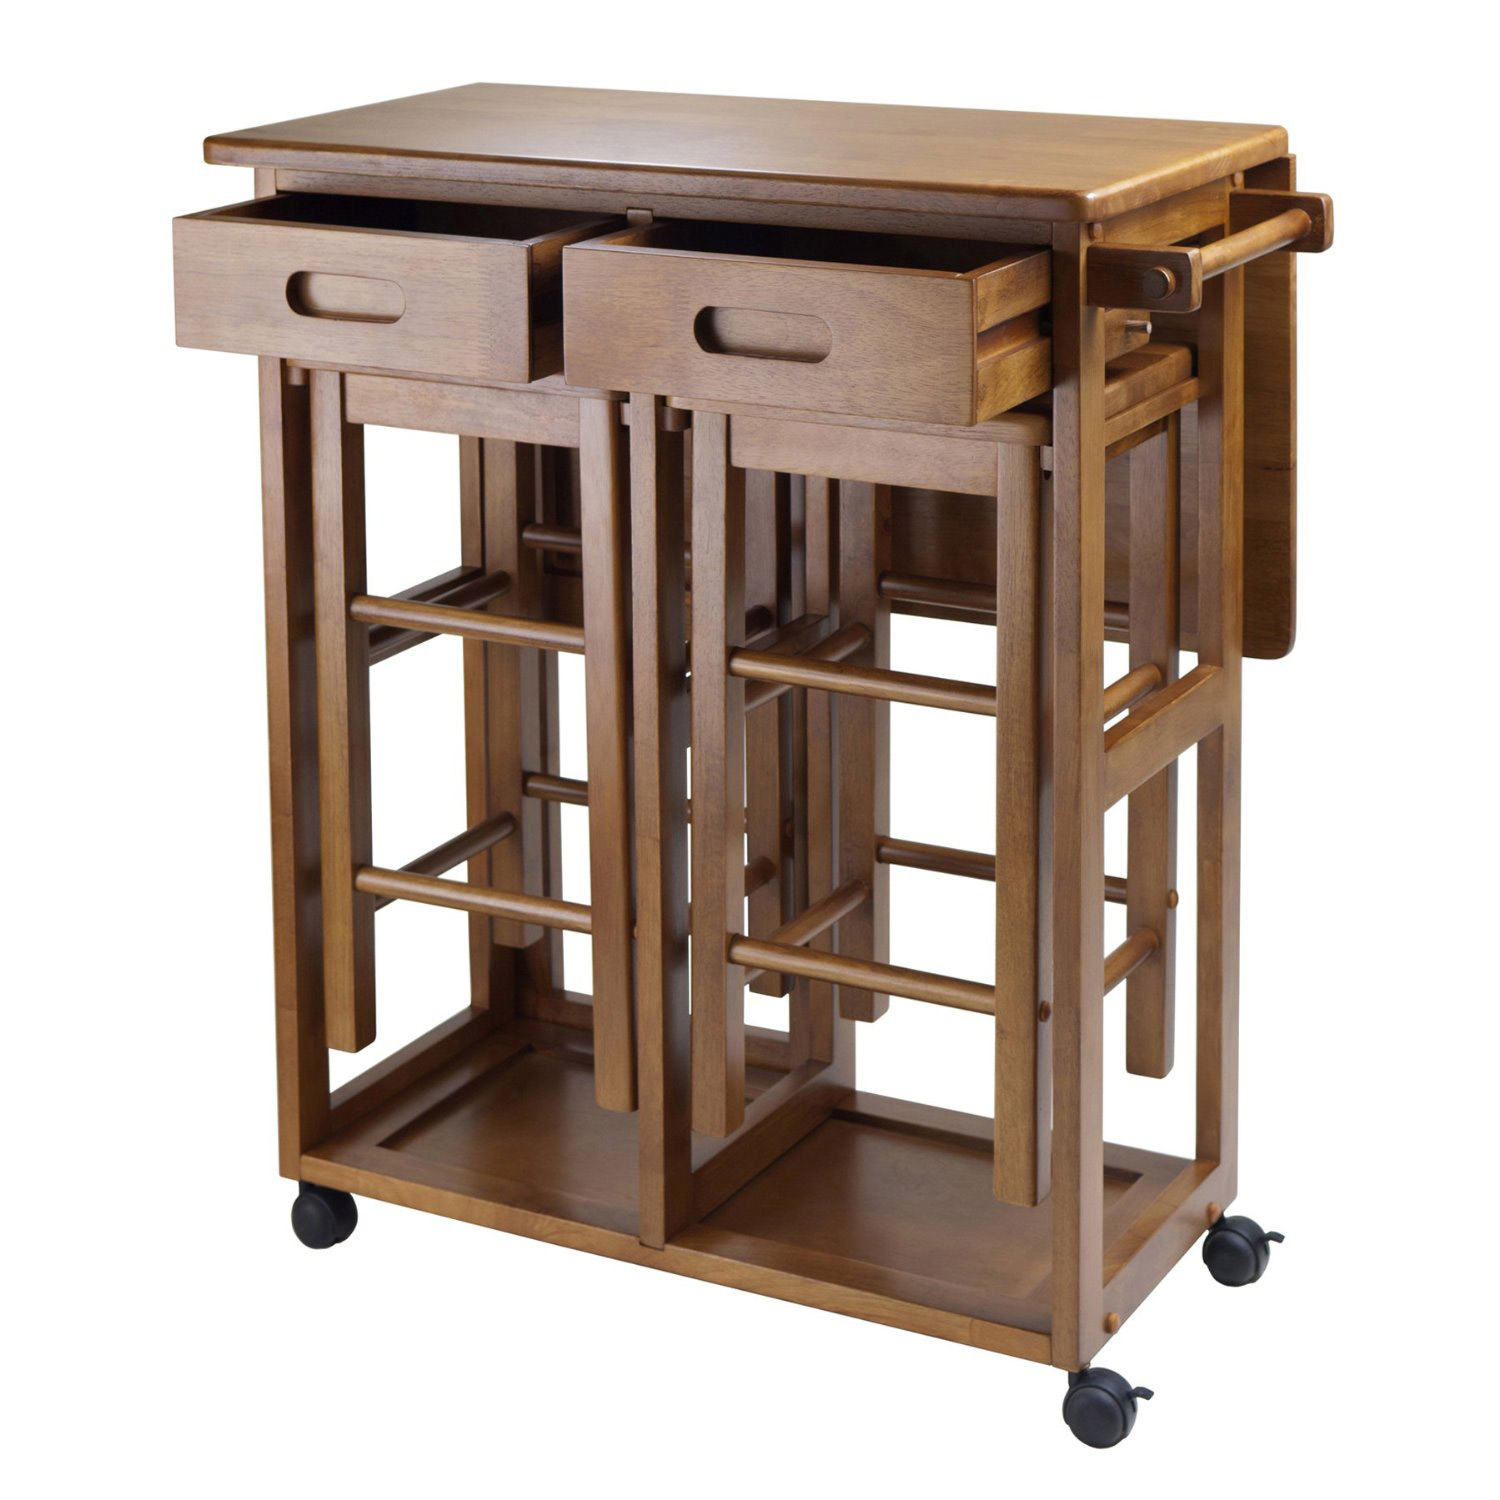 Small Narrow Folding Table Choose A Folding Dining Table For A Small Space Adorable